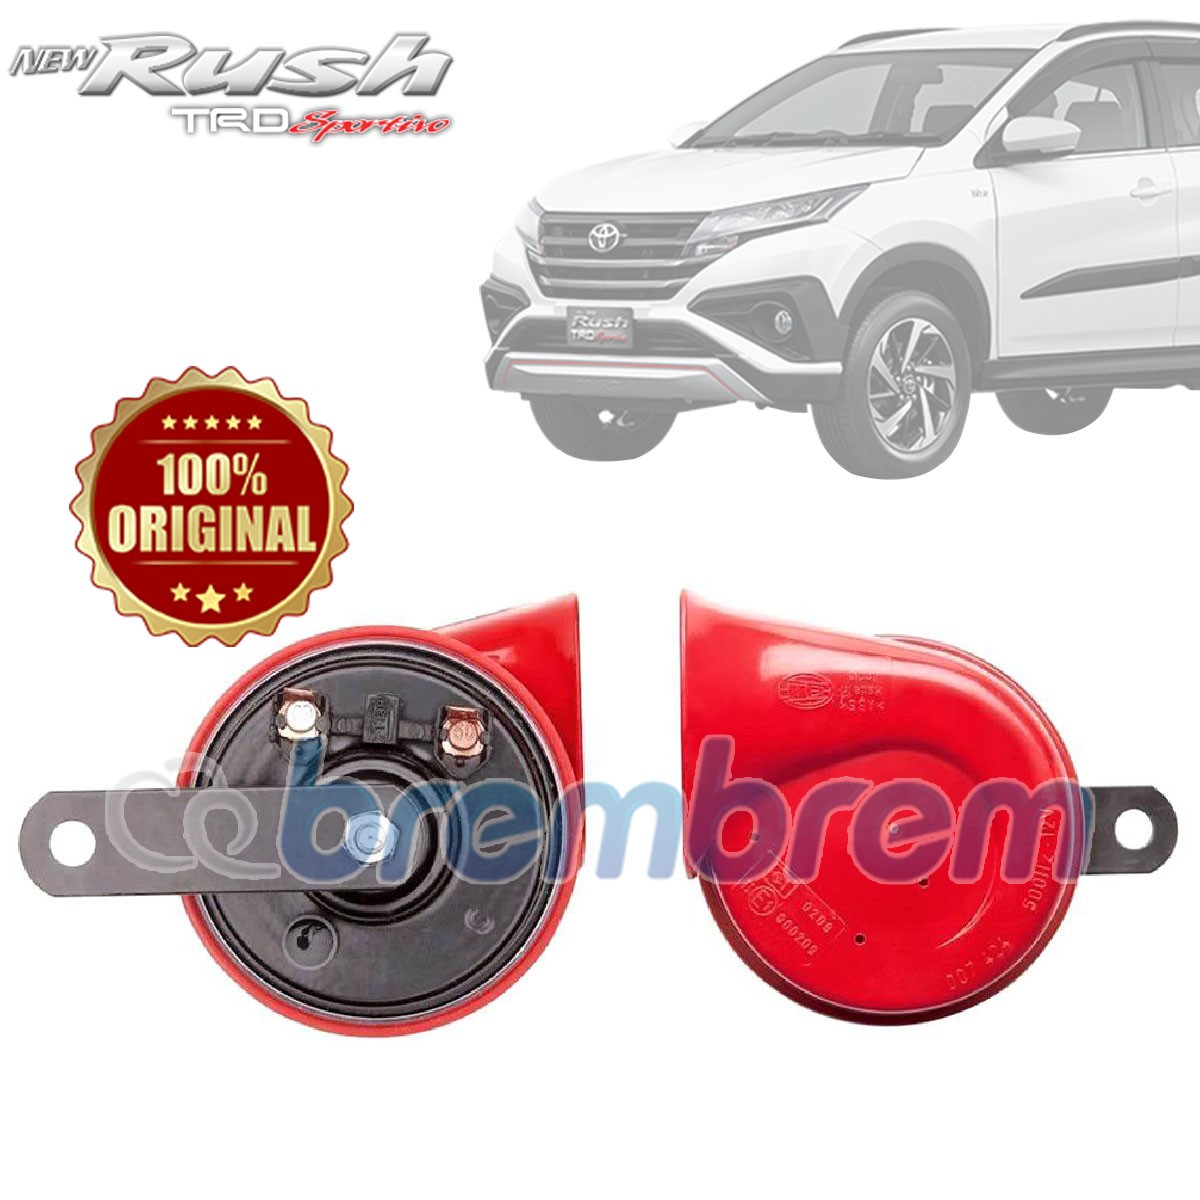 HELLA RED TWIN TONE - KLAKSON MOBIL TOYOTA ALL NEW RUSH